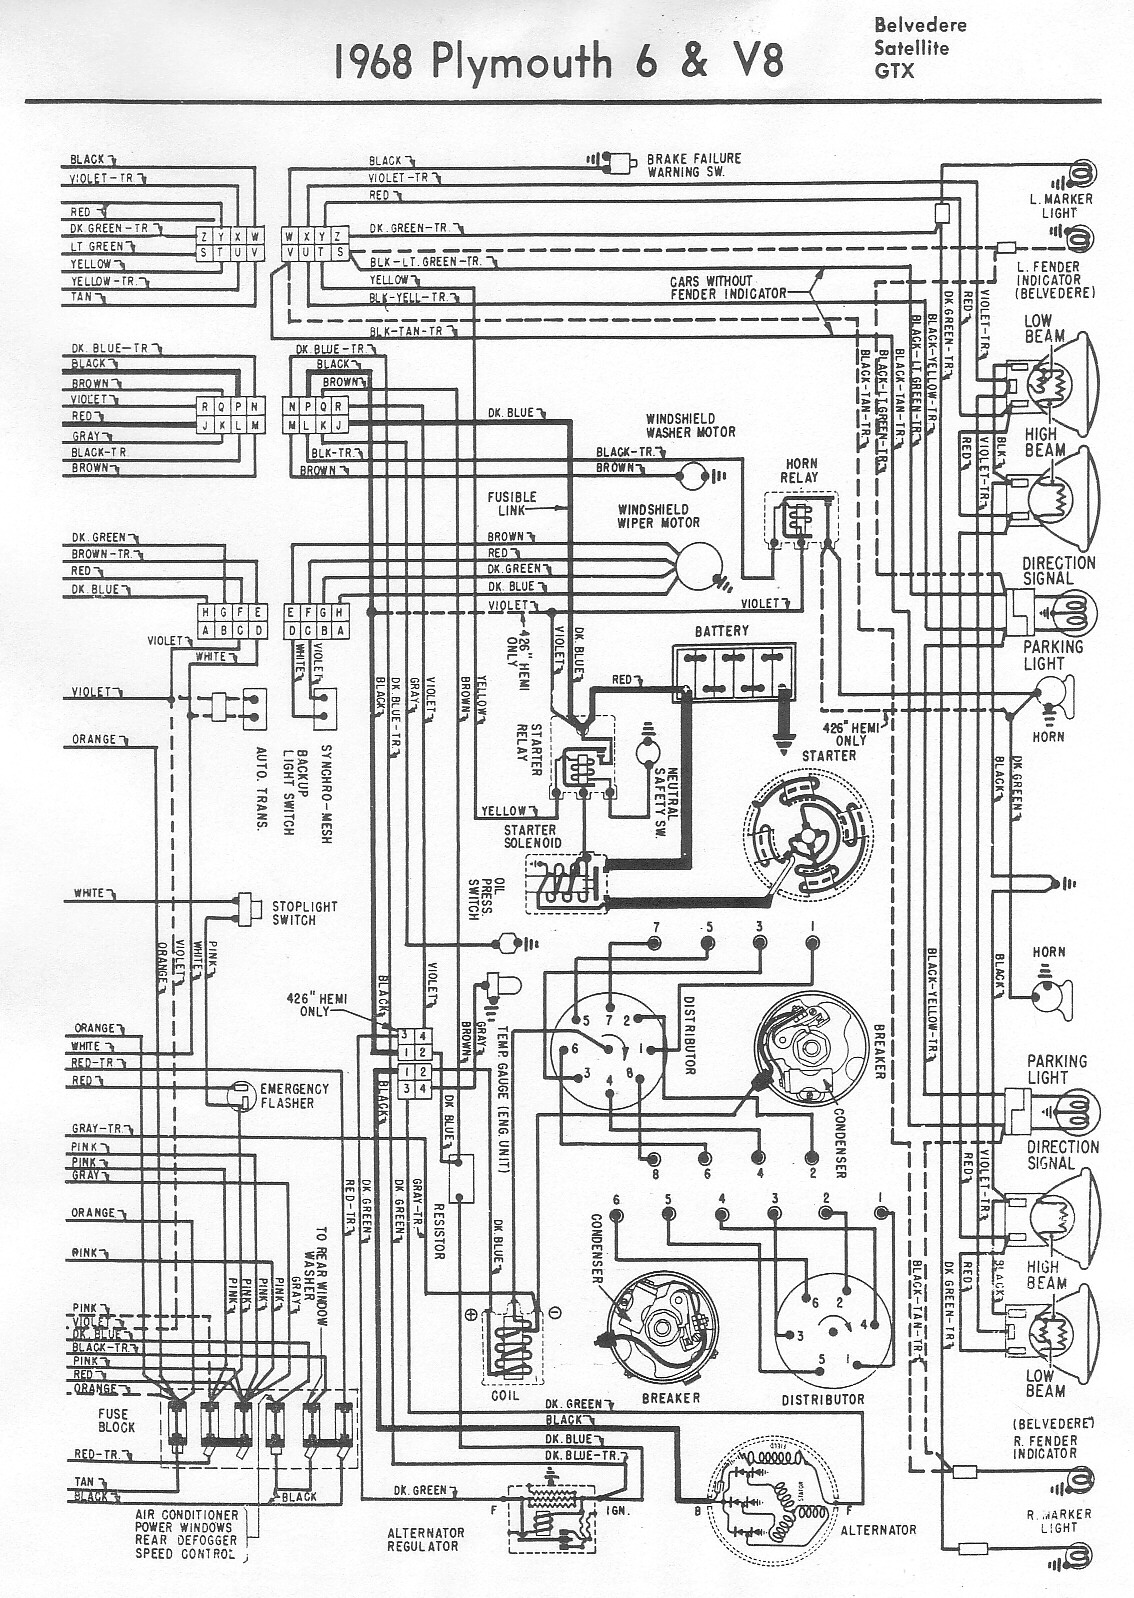 1969 gtx wiring diagram wiring diagram operations 1969 Plymouth Barracuda Wiring Diagram 1969 gtx wiring diagram wiring diagram expert 1969 plymouth gtx wiring diagram 1969 gtx wiring diagram